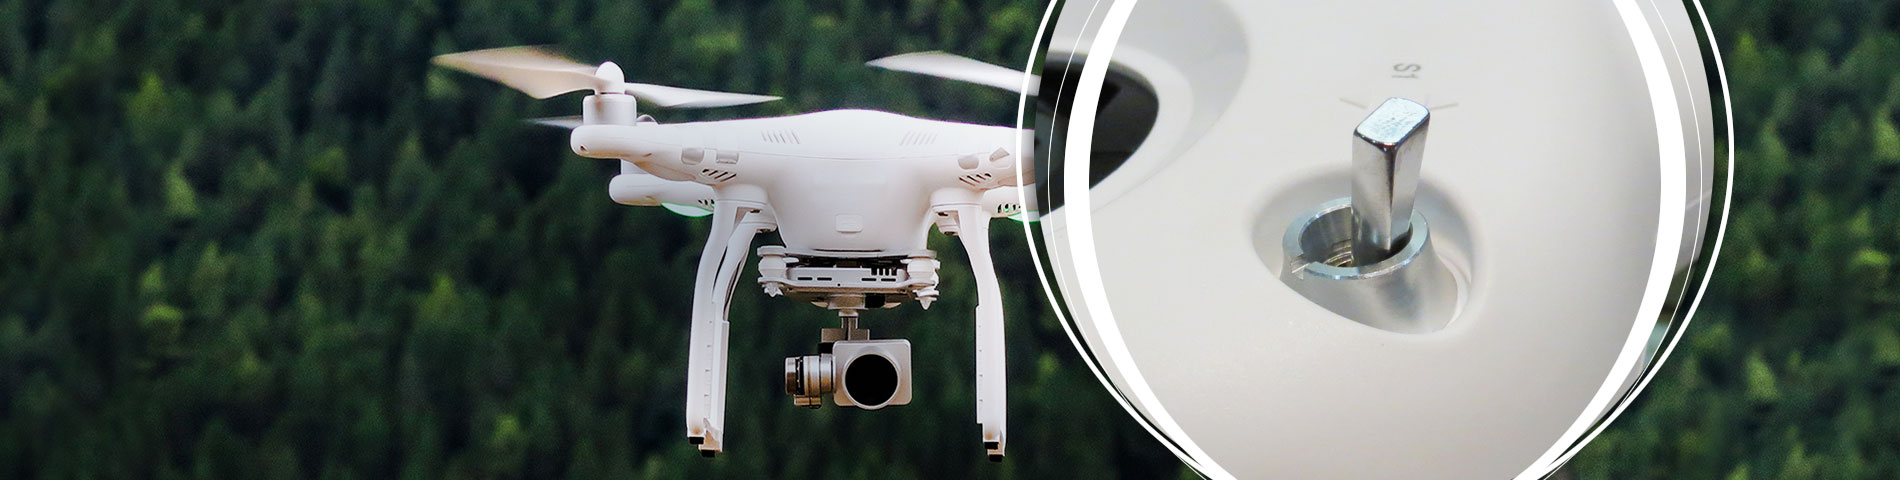 Model Aircraft Industry -  Applicable to remote control of UAV